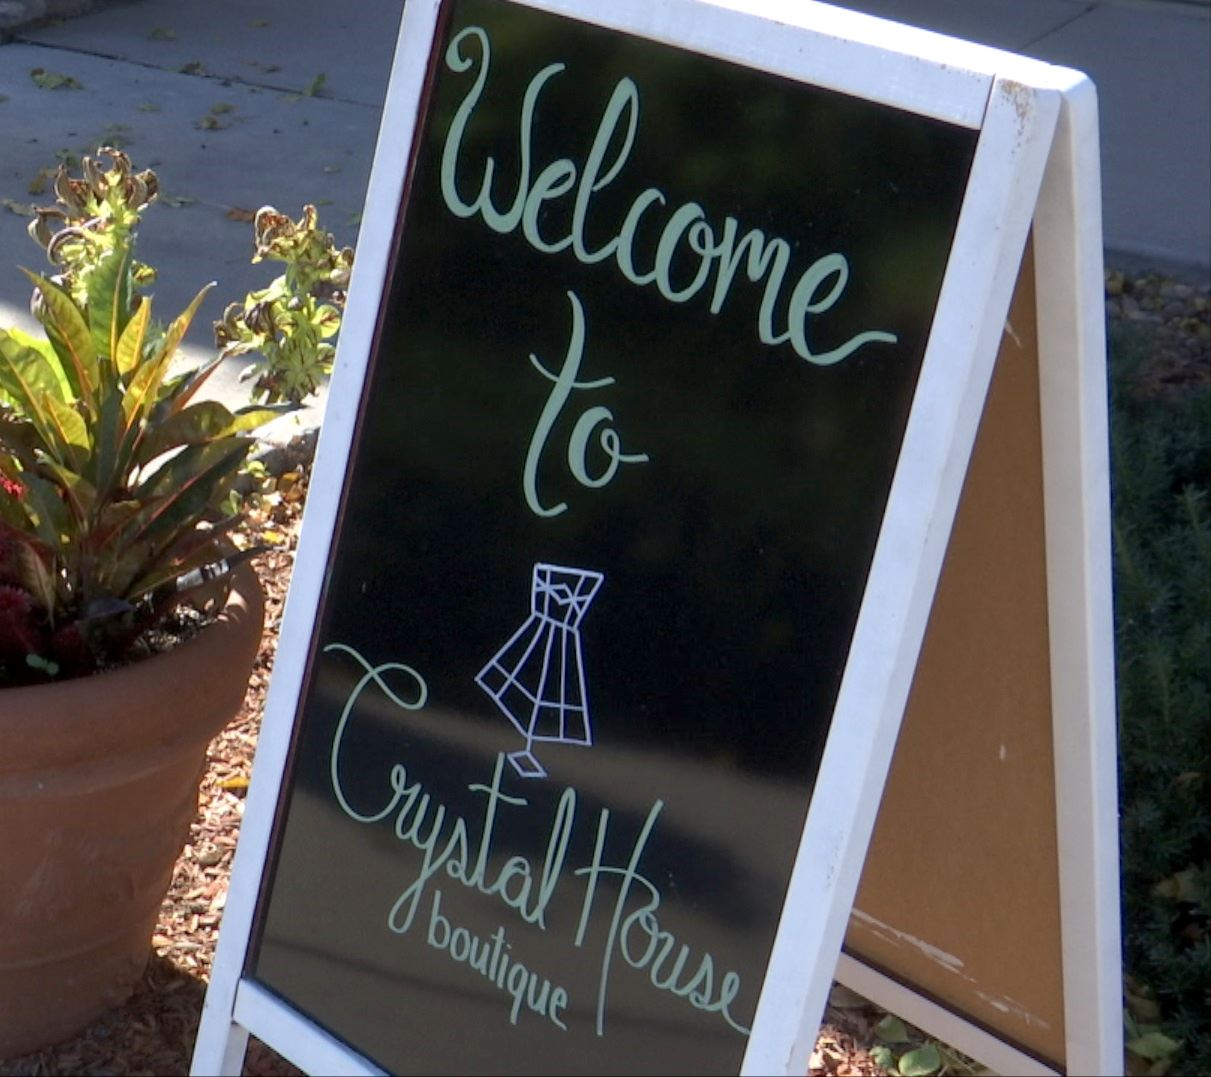 sandwich board sign for Crystal House boutique